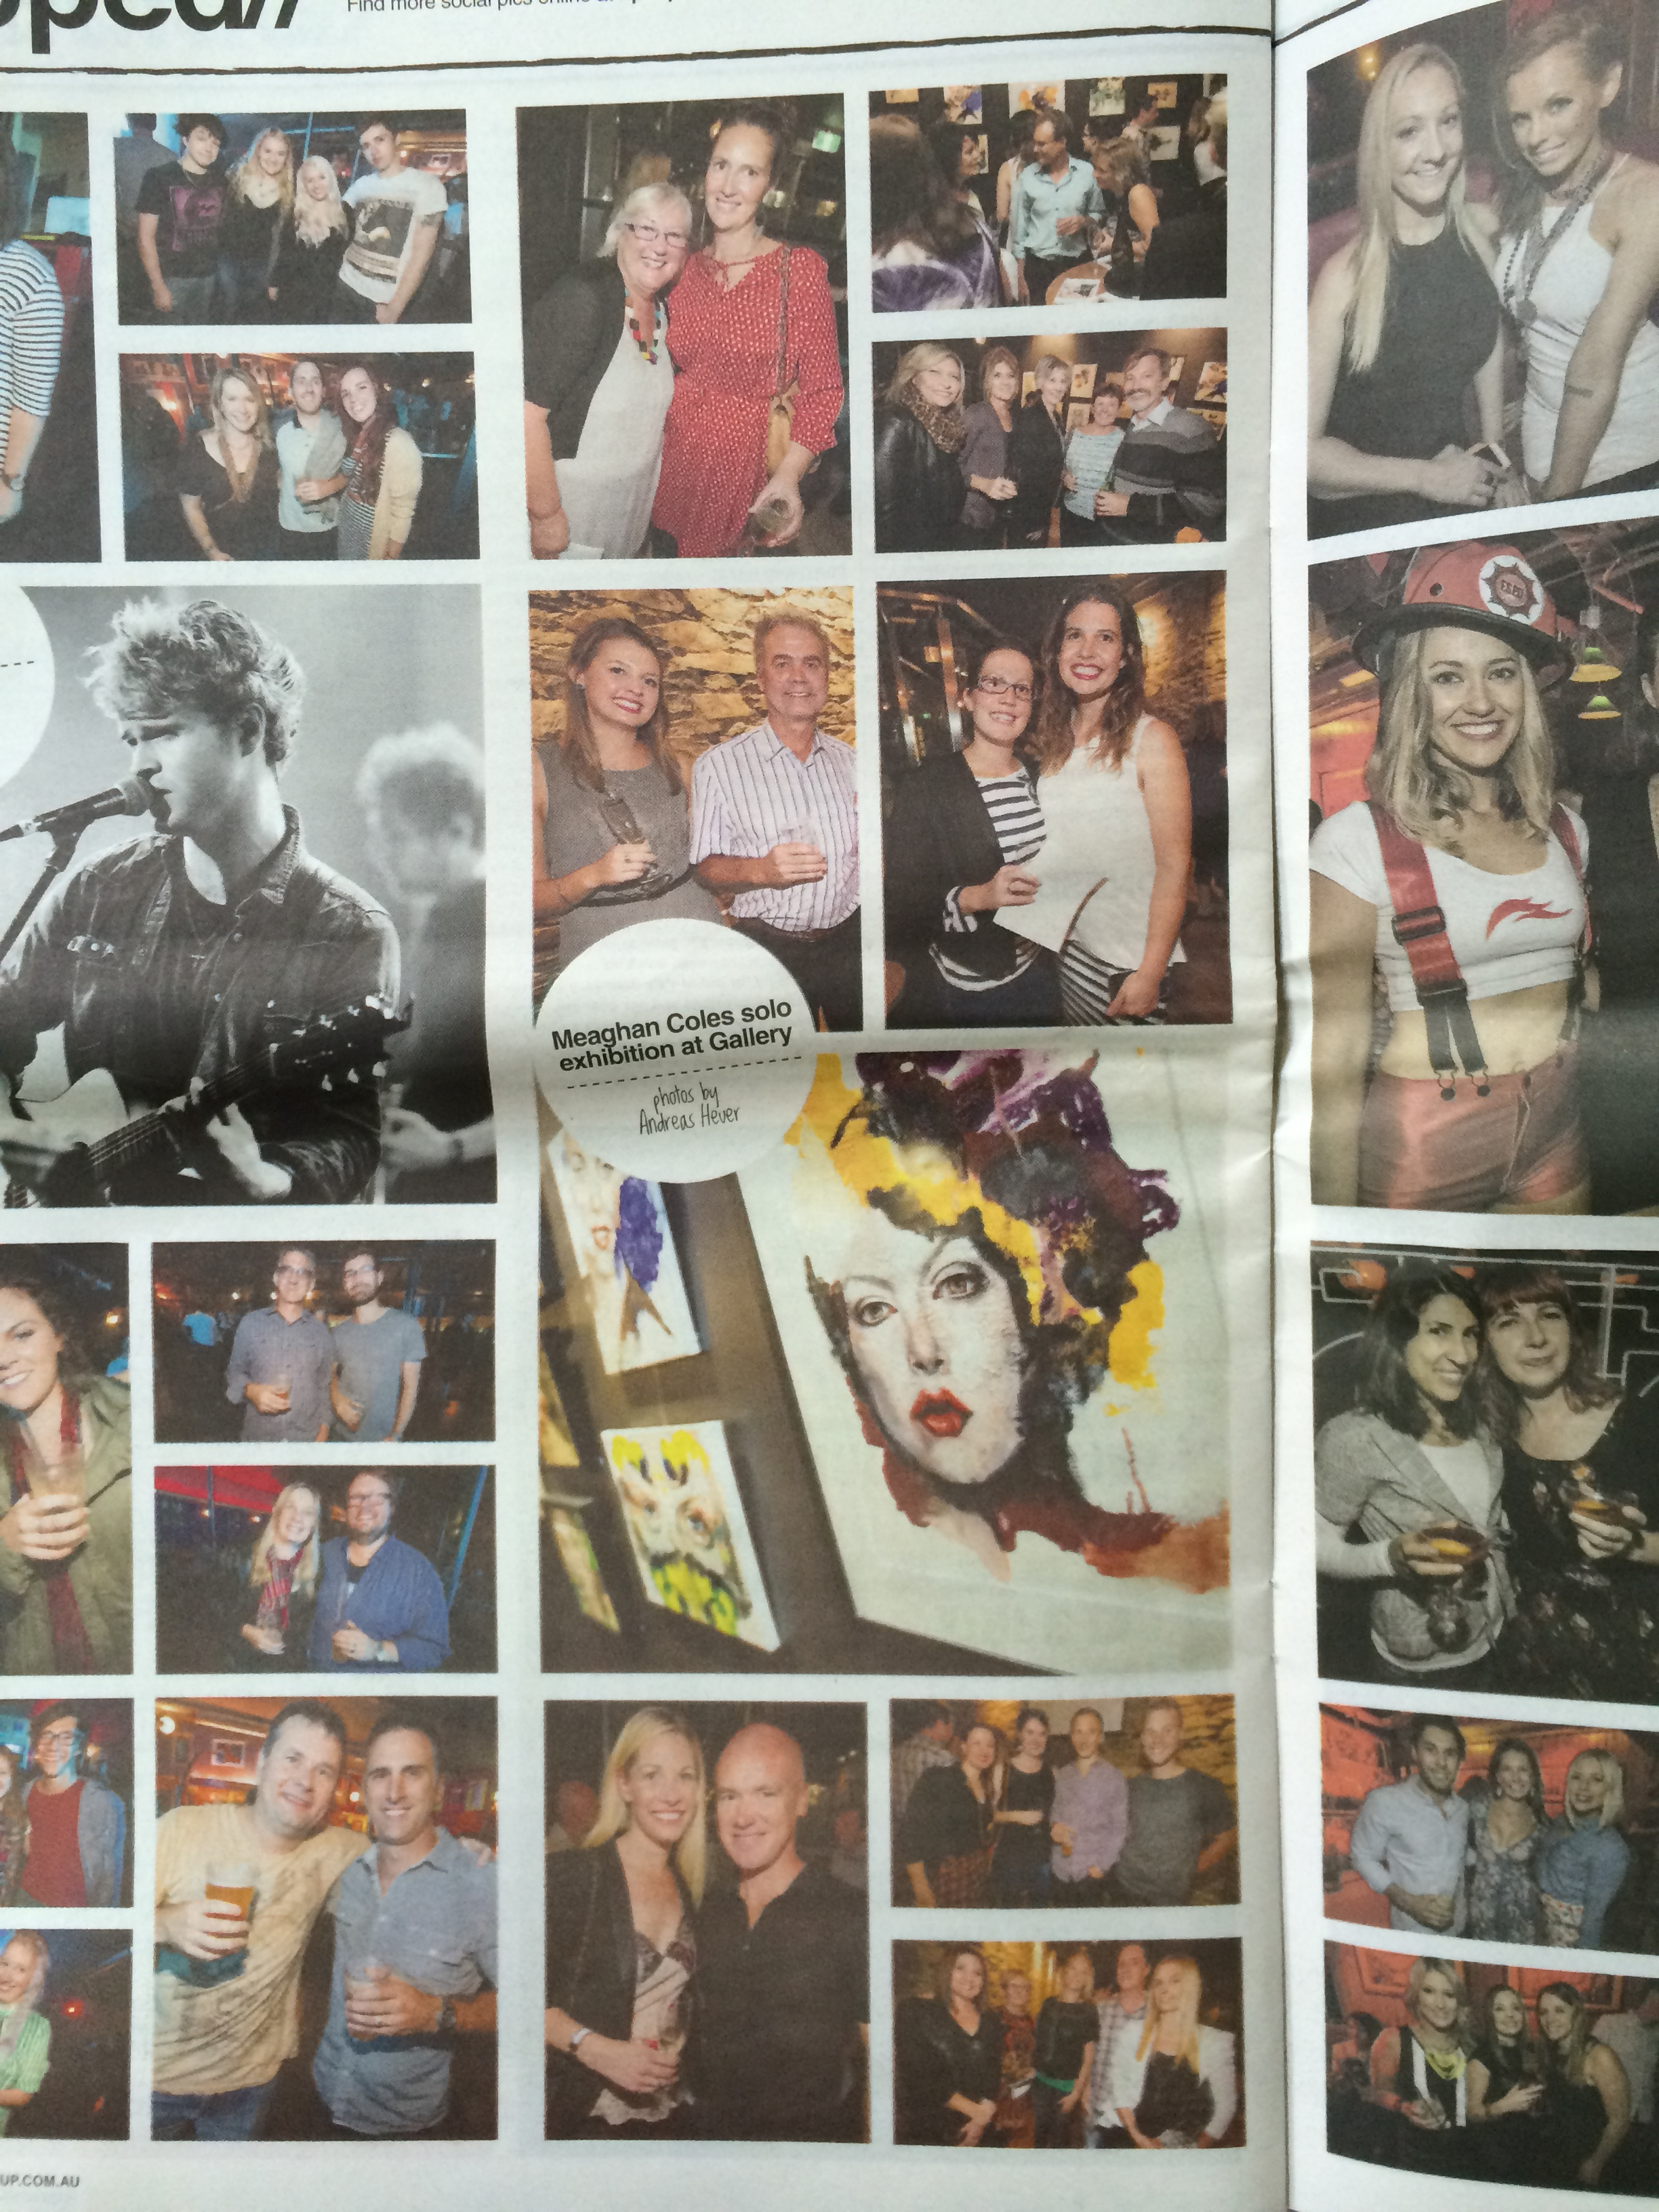 Meaghan Coles solo exhibition at Gallery,    Rip it up, pg 18, Issue 1286, April 17, Adelaide